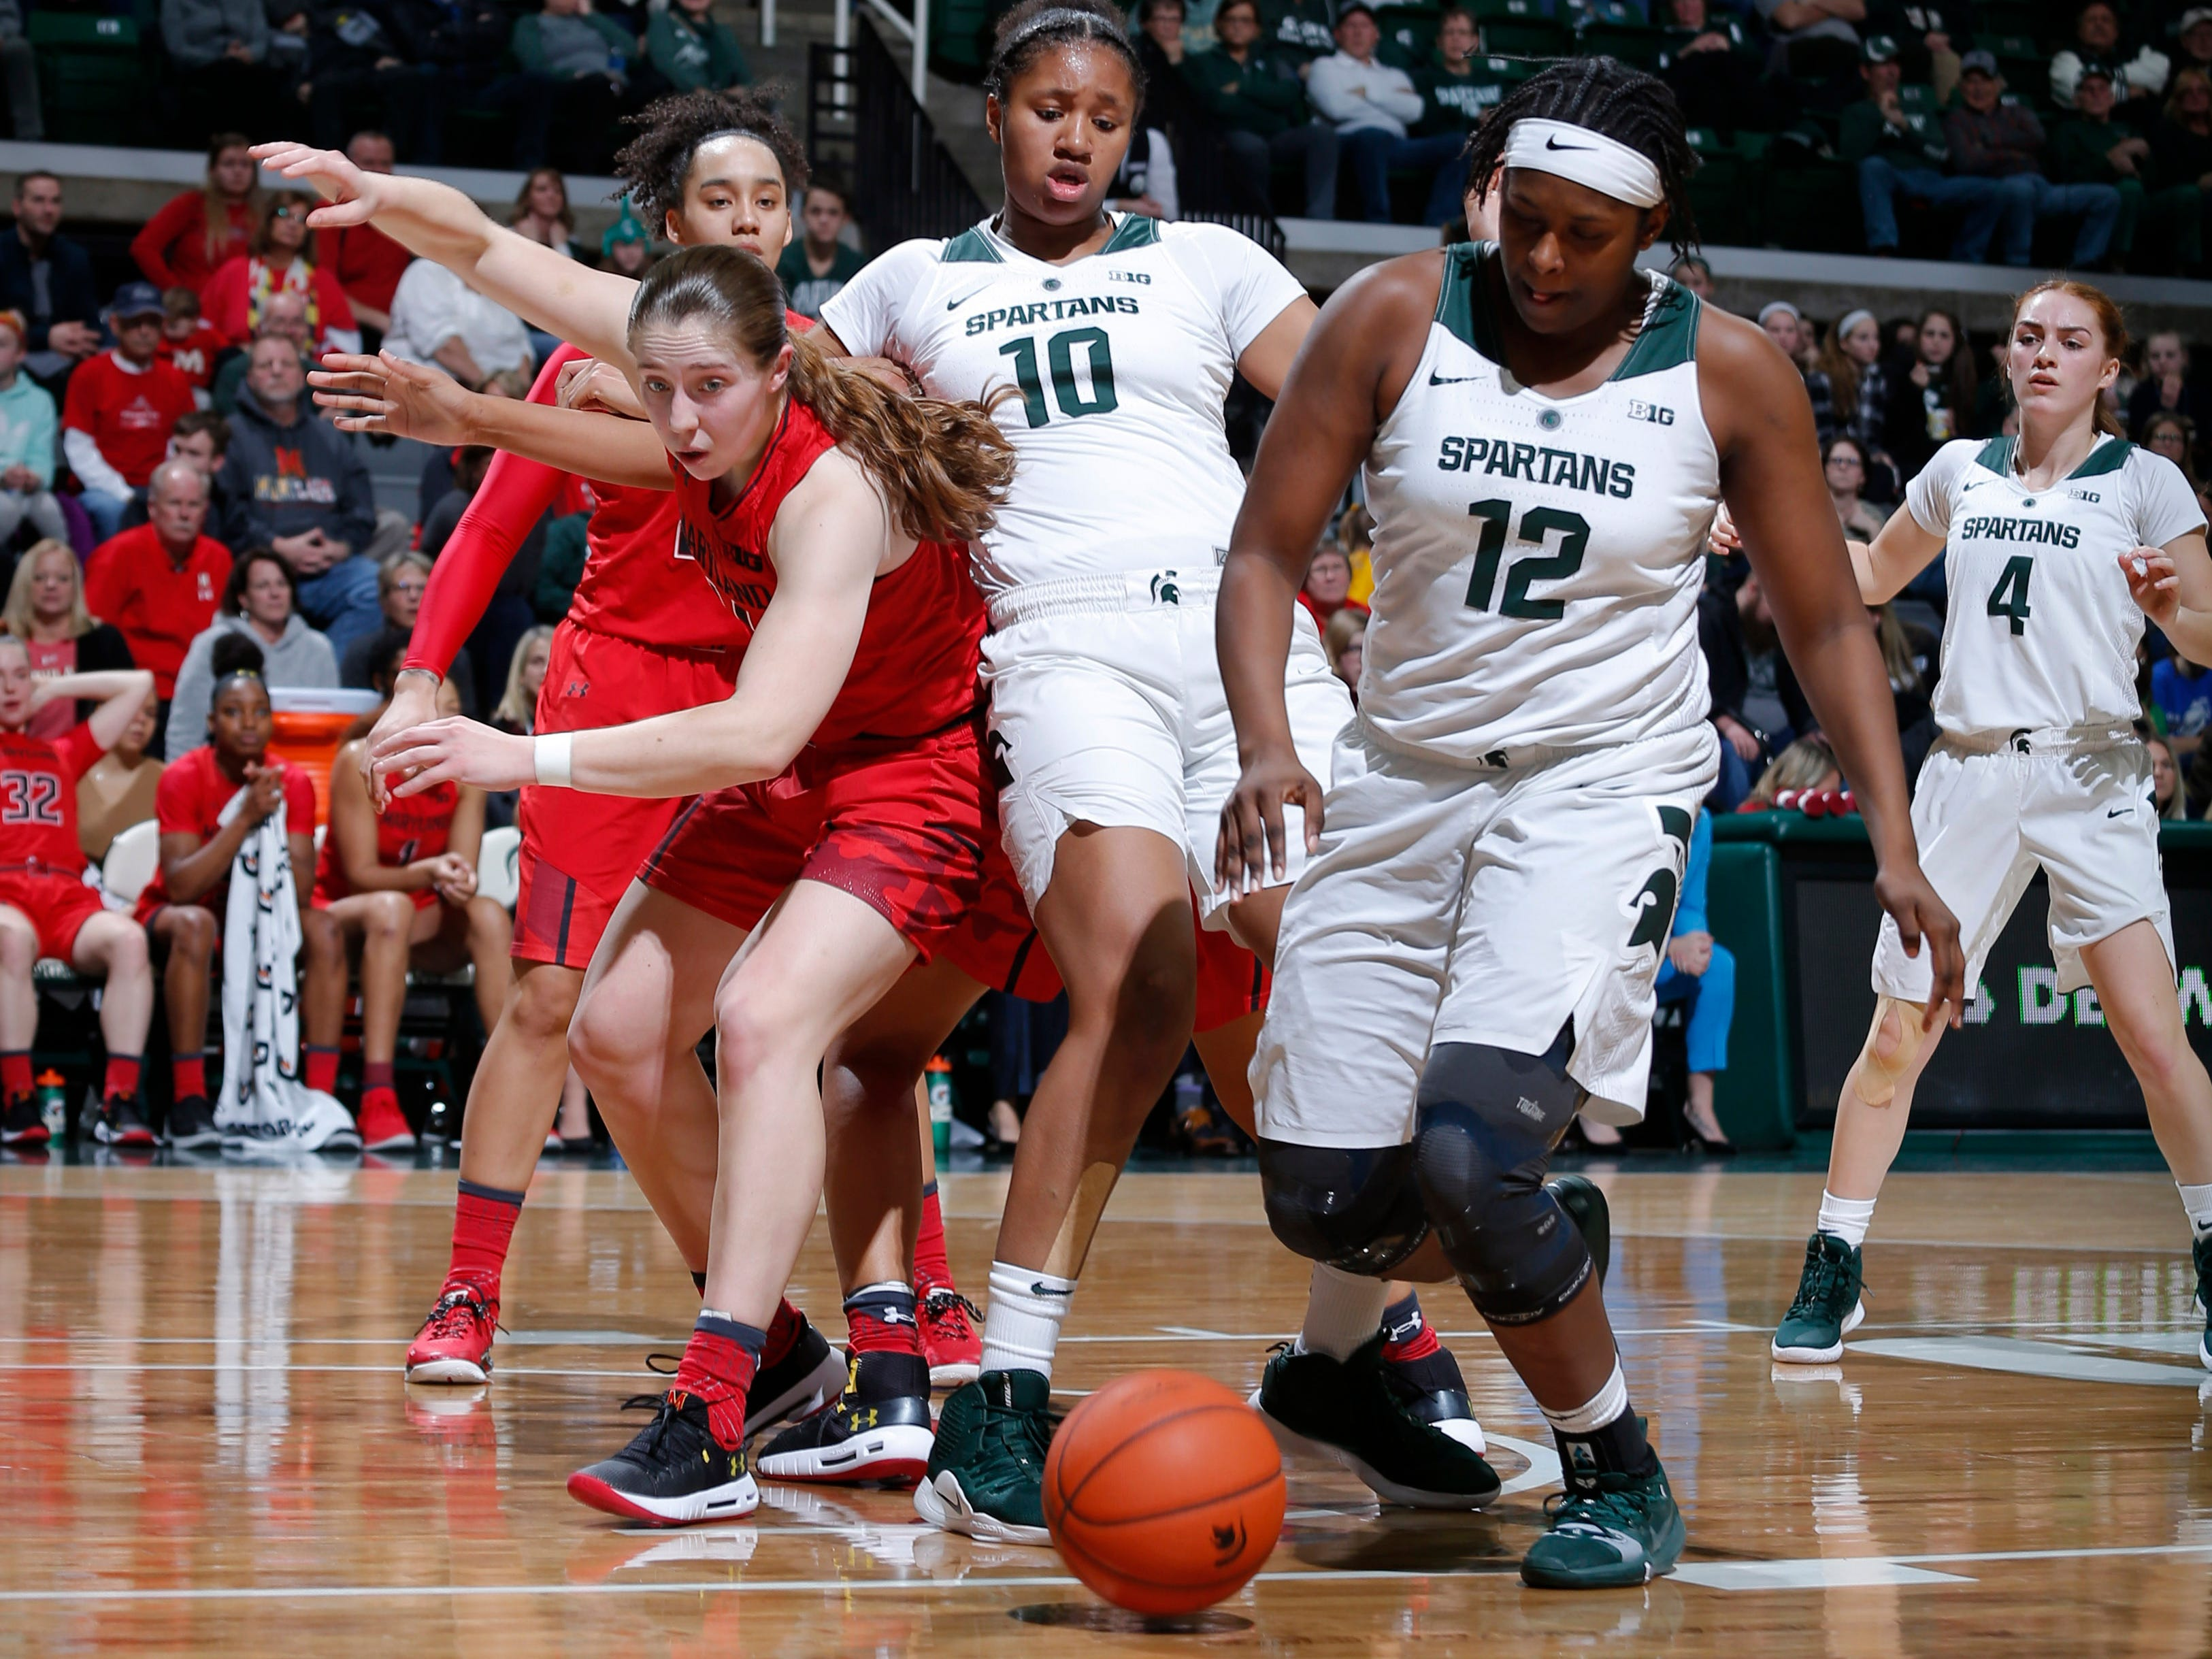 Michigan State's Nia Hollie (12) and Sidney Cooks (10) and Maryland's Taylor Mikesell chase the ball, Thursday, Jan. 17, 2019, in East Lansing, Mich.